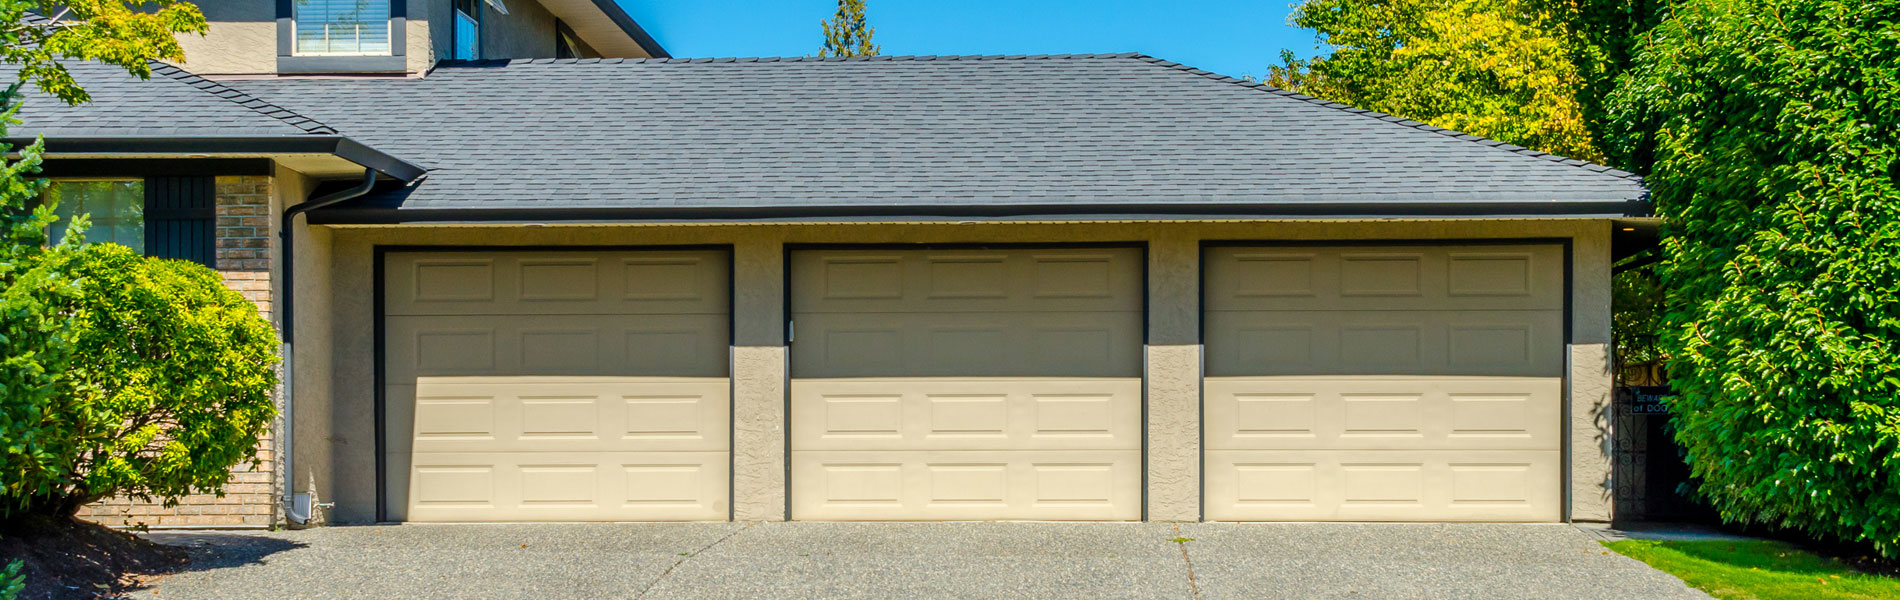 Eagle Garage Door Winter Garden, FL 407-749-0446